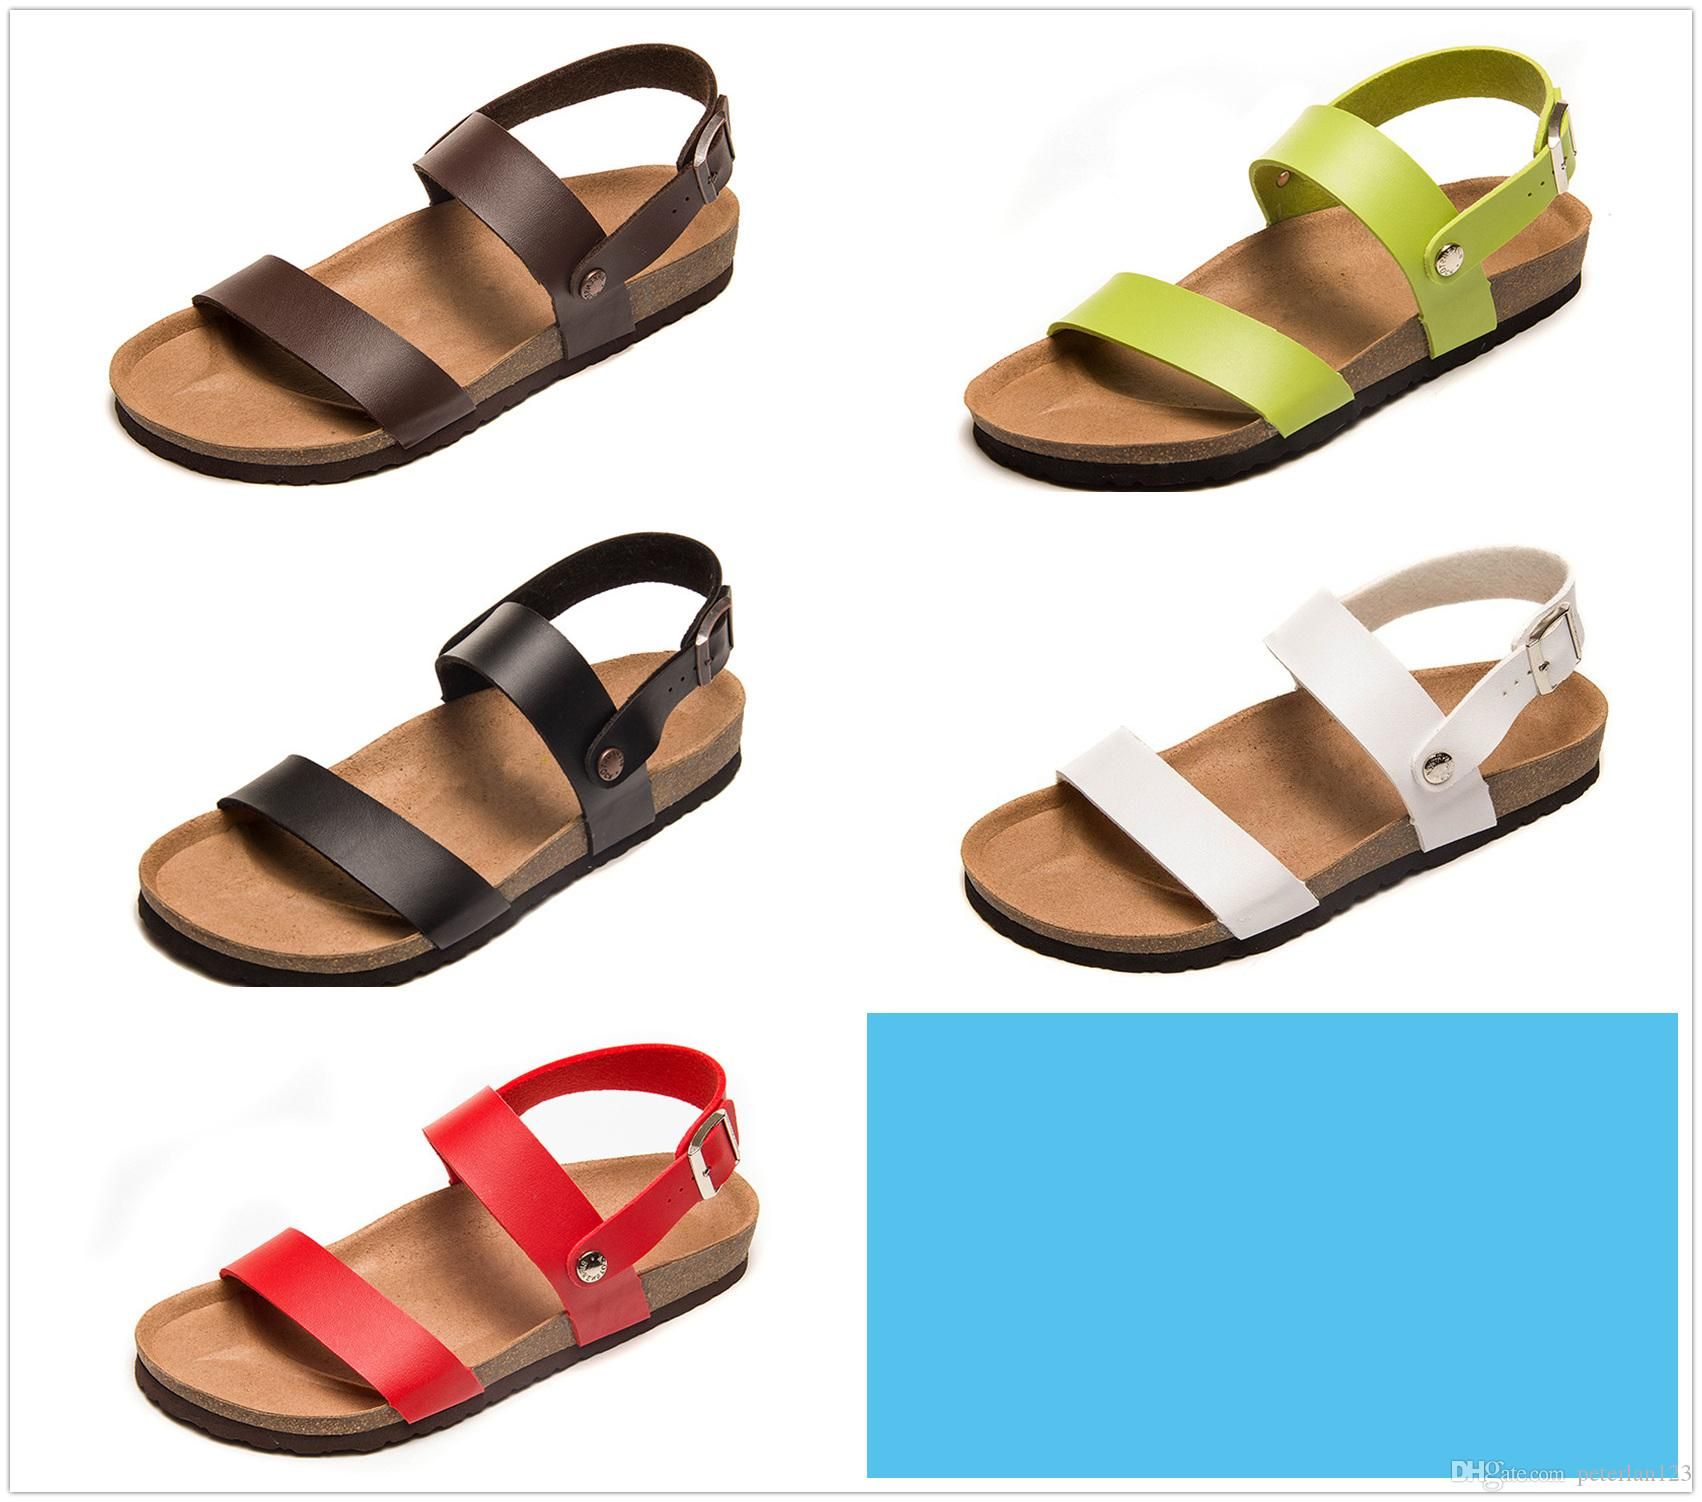 c31297b690b9 Famous Brand Arizona Men Flat Heel Sandals Women Fashion Summer Beaches  Casual Sandals High Quality Genuine Leather Sandals With Box Cheap Shoes  Wedge ...